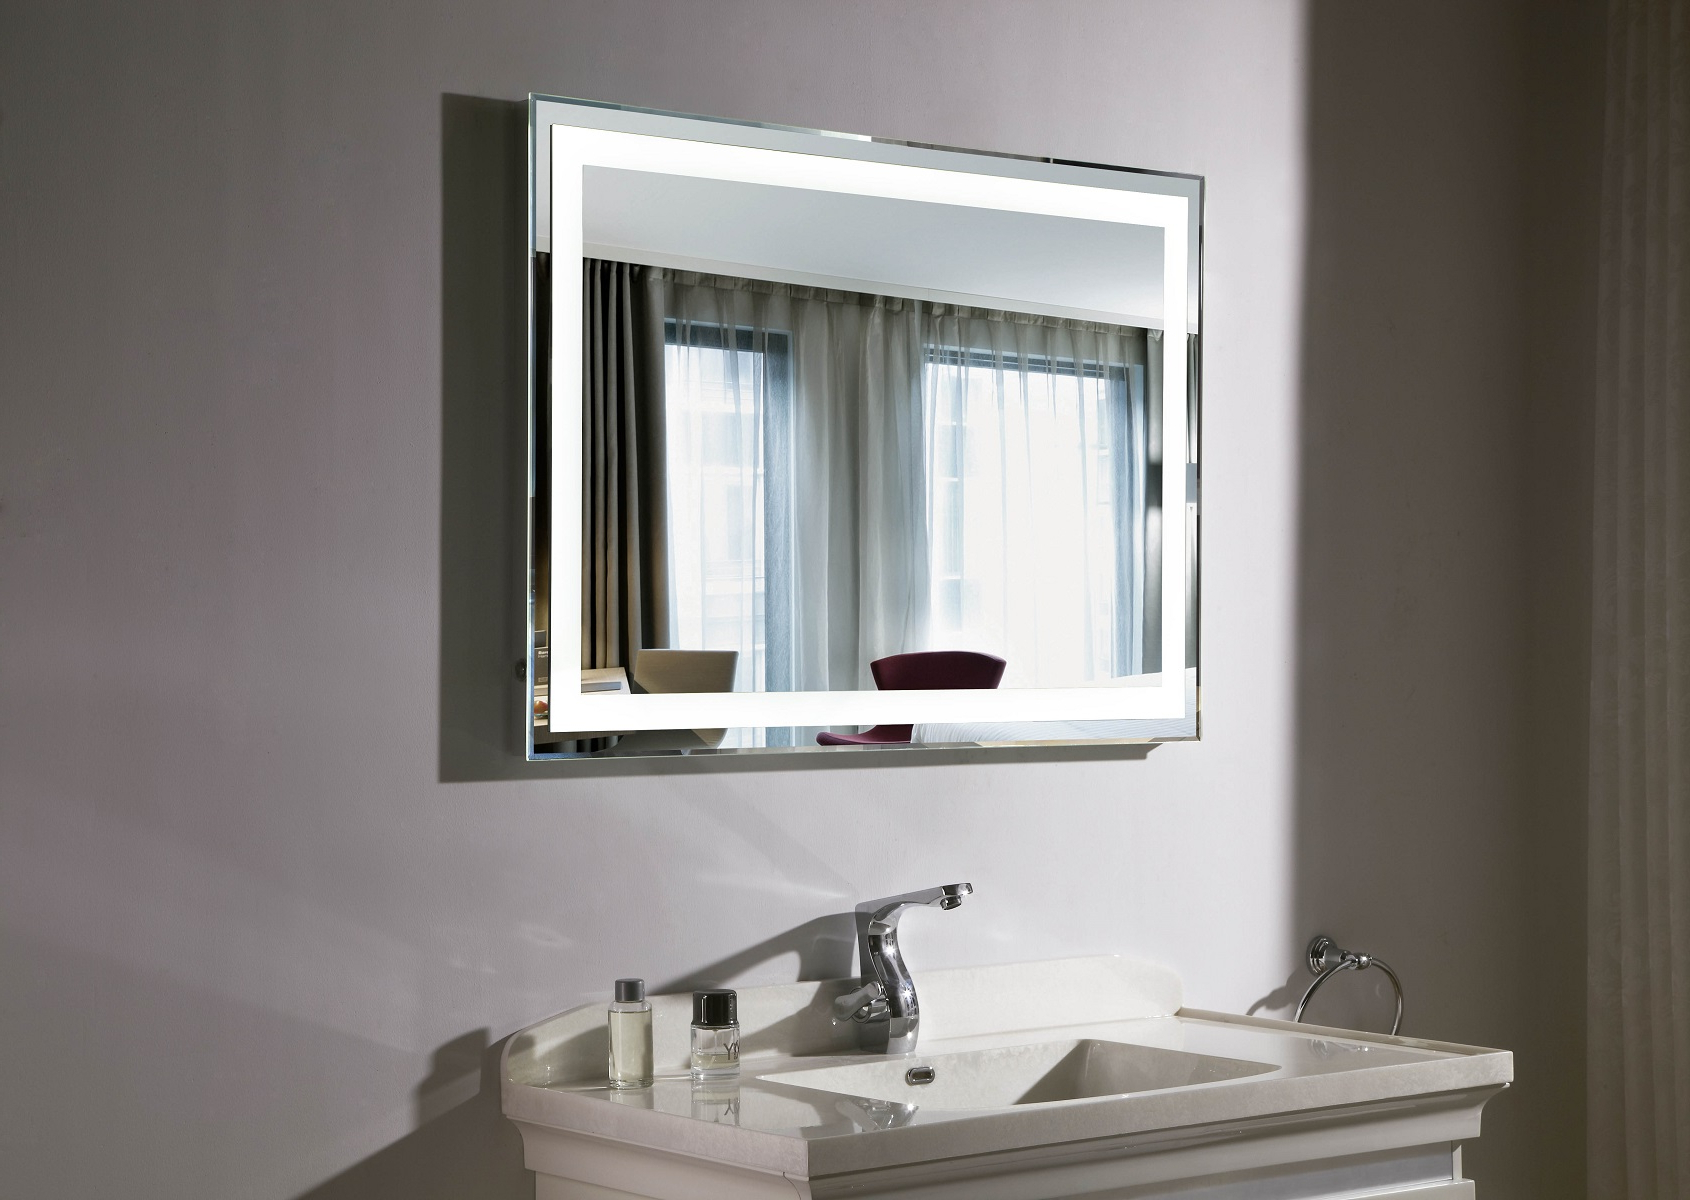 Budapest Iii Lighted Vanity Mirror Led Bathroom Mirror With Regard To Famous Lighted Wall Mirrors For Bathrooms (View 6 of 20)